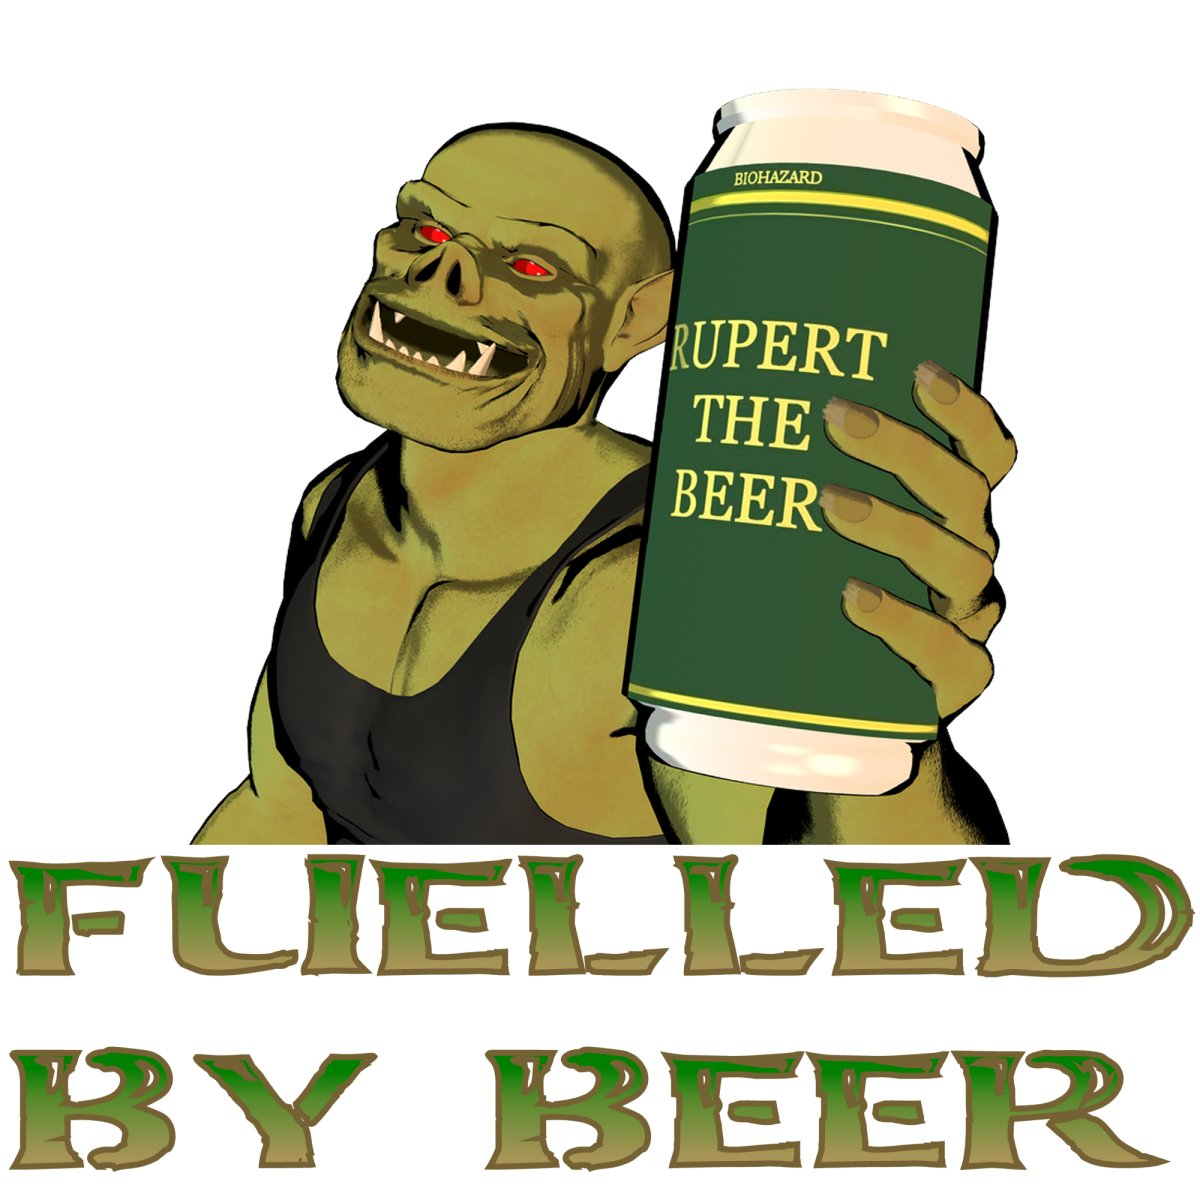 Fuelled By Beer